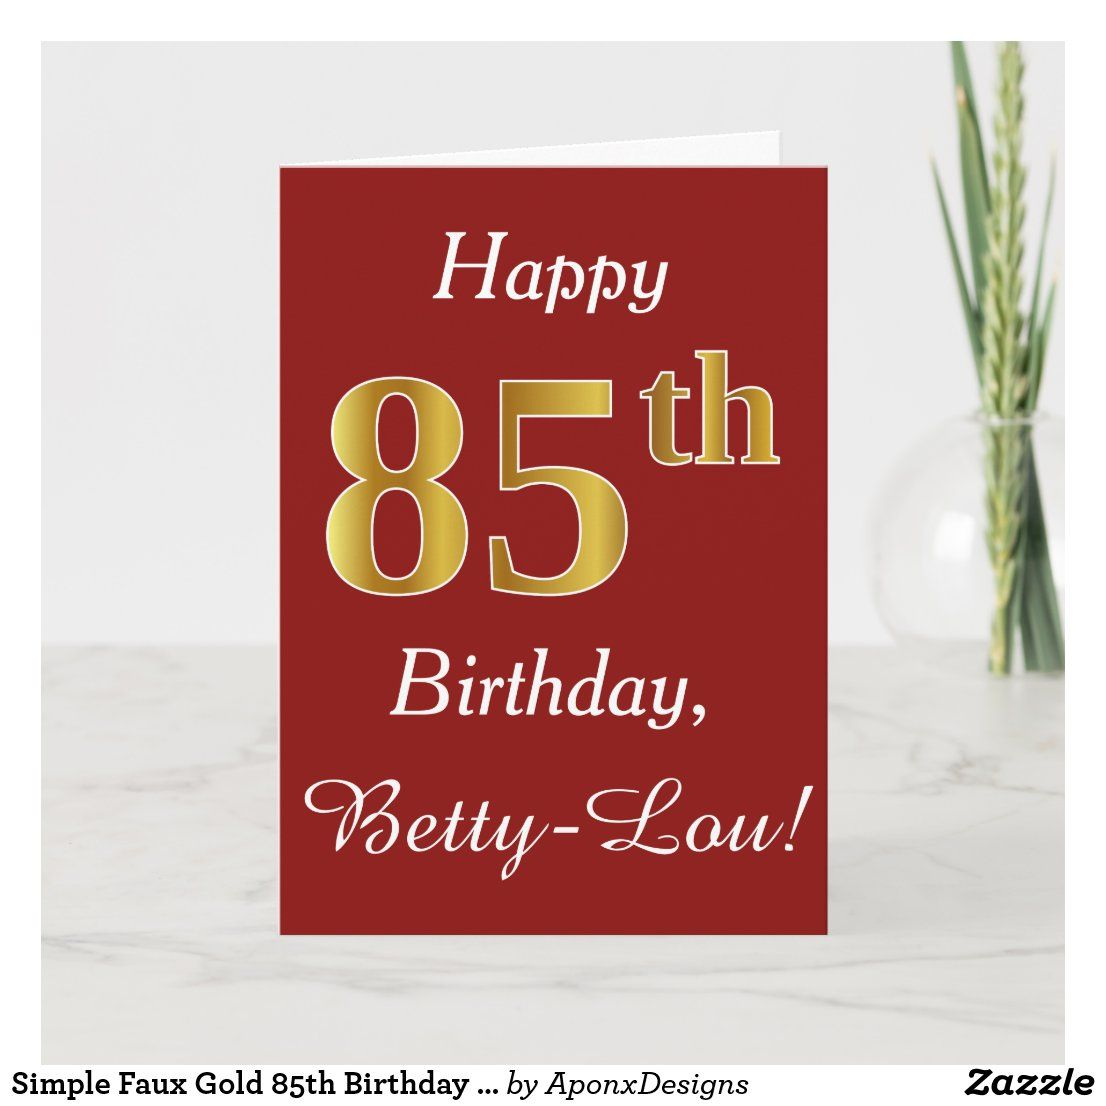 Simple Faux Gold 85th Birthday Custom Name Card Zazzle Com 65th Birthday Simple Birthday Cards 85th Birthday